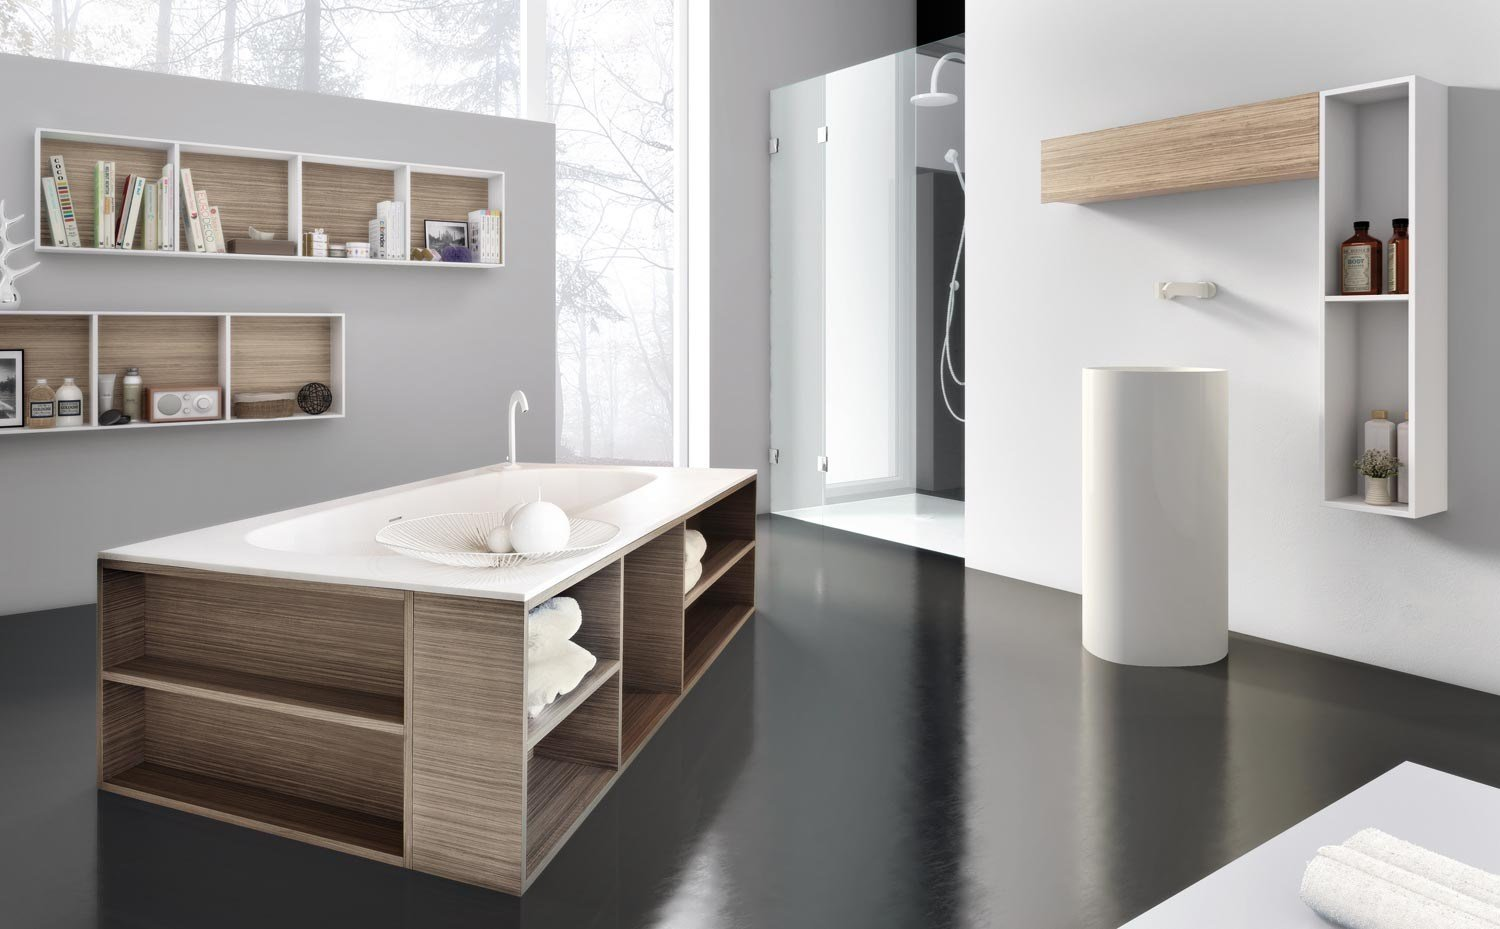 mariposa 50 baignoire by lasa idea design massimo casprini. Black Bedroom Furniture Sets. Home Design Ideas